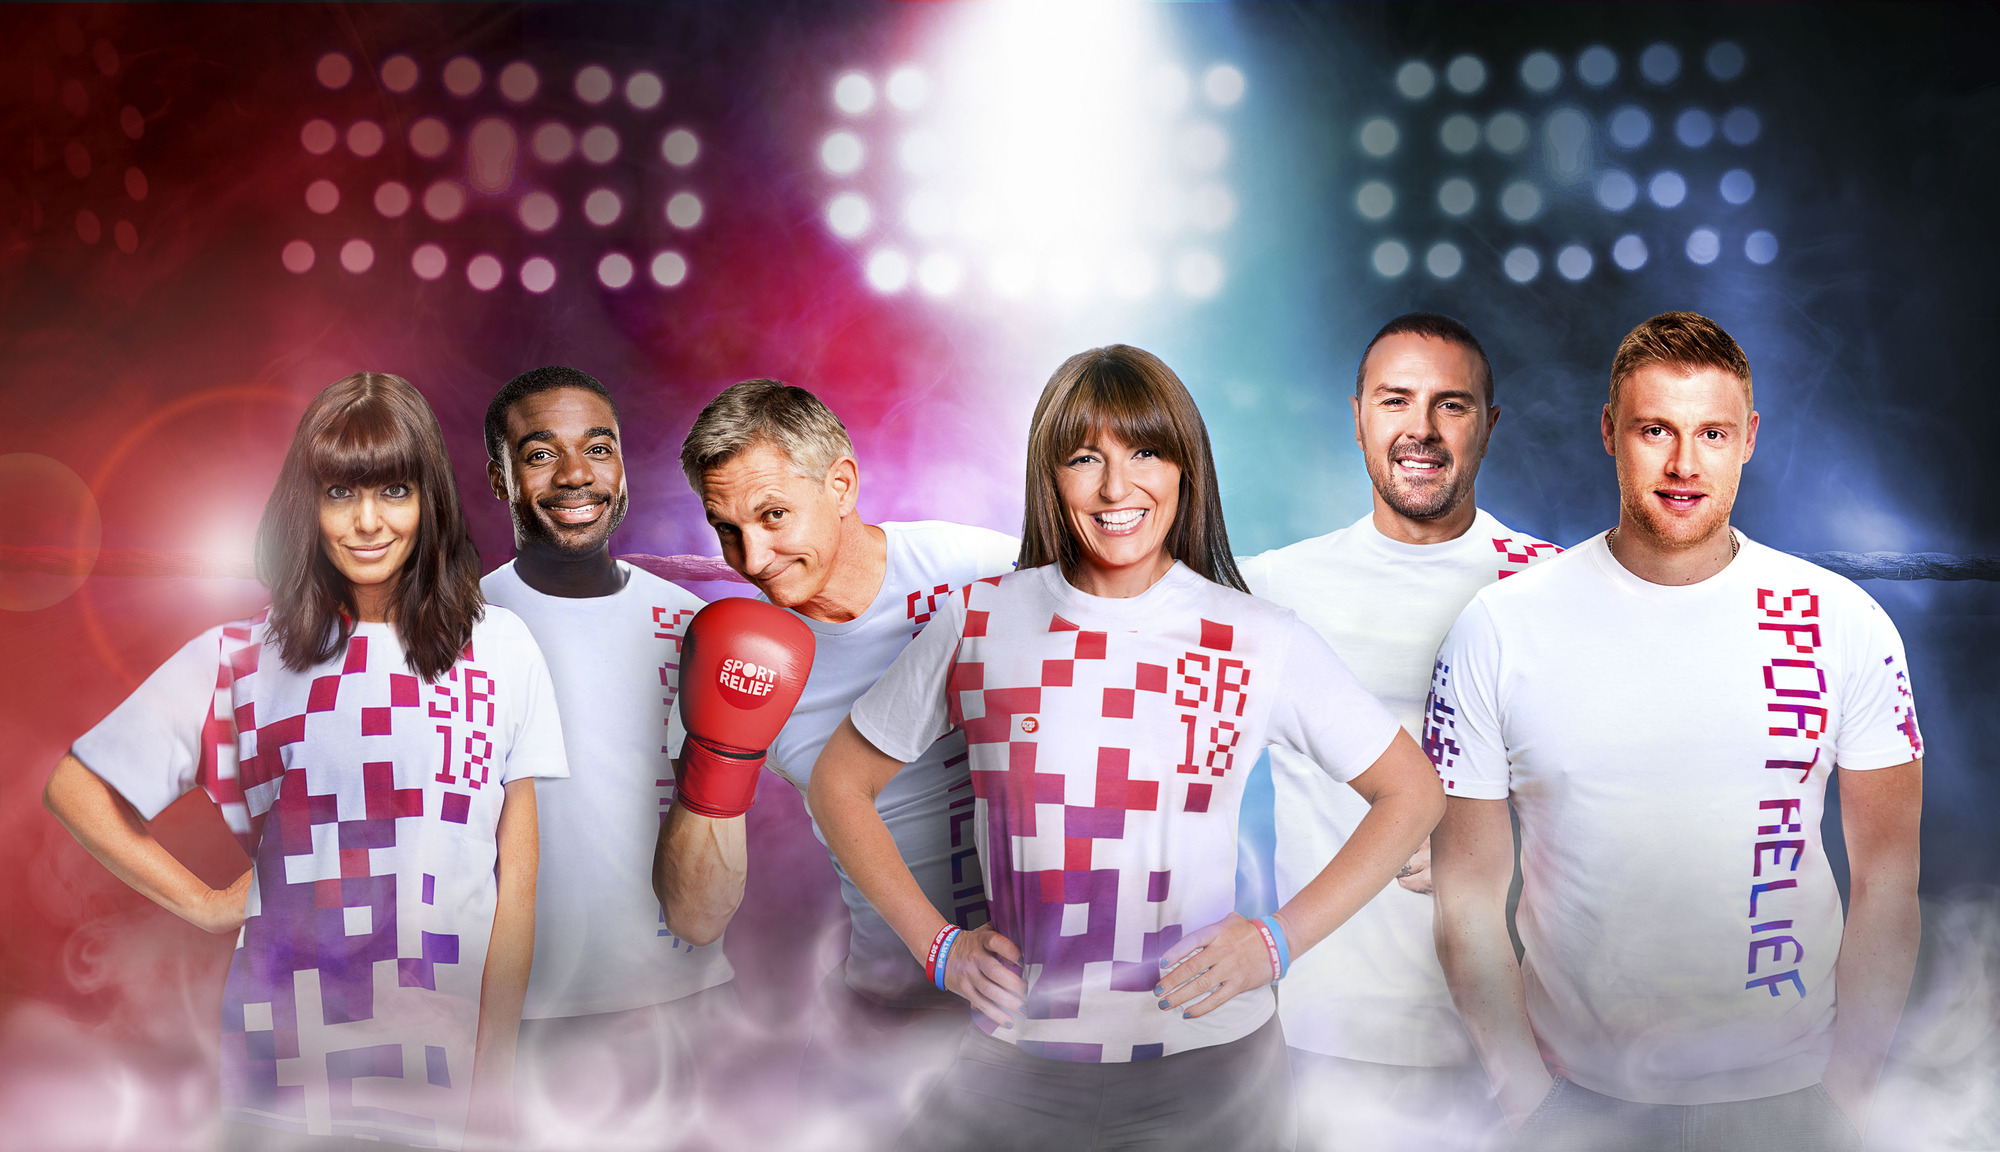 Sport Relief 2018: Fundraising ideas, challenges, and how to get